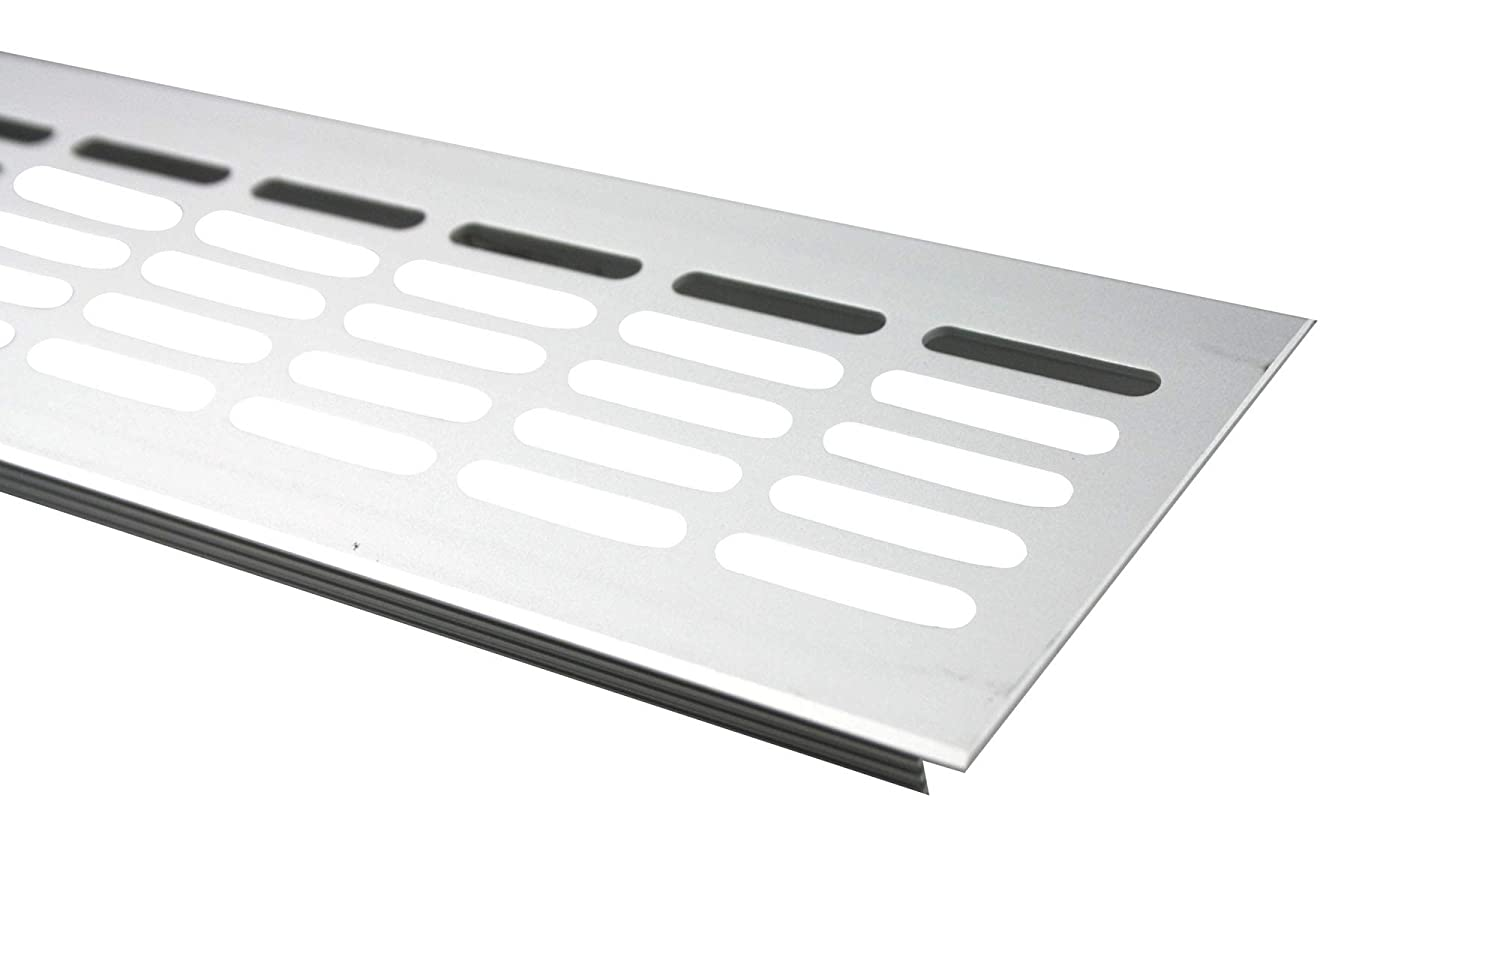 MS Fittings® Aluminium Ventilation Grille, Heater Cover, 80 mmx 200mm, Various Colours (Black-RAL 9005) 80 mmx 200mm Various Colours (Black-RAL 9005) MS Beschläge